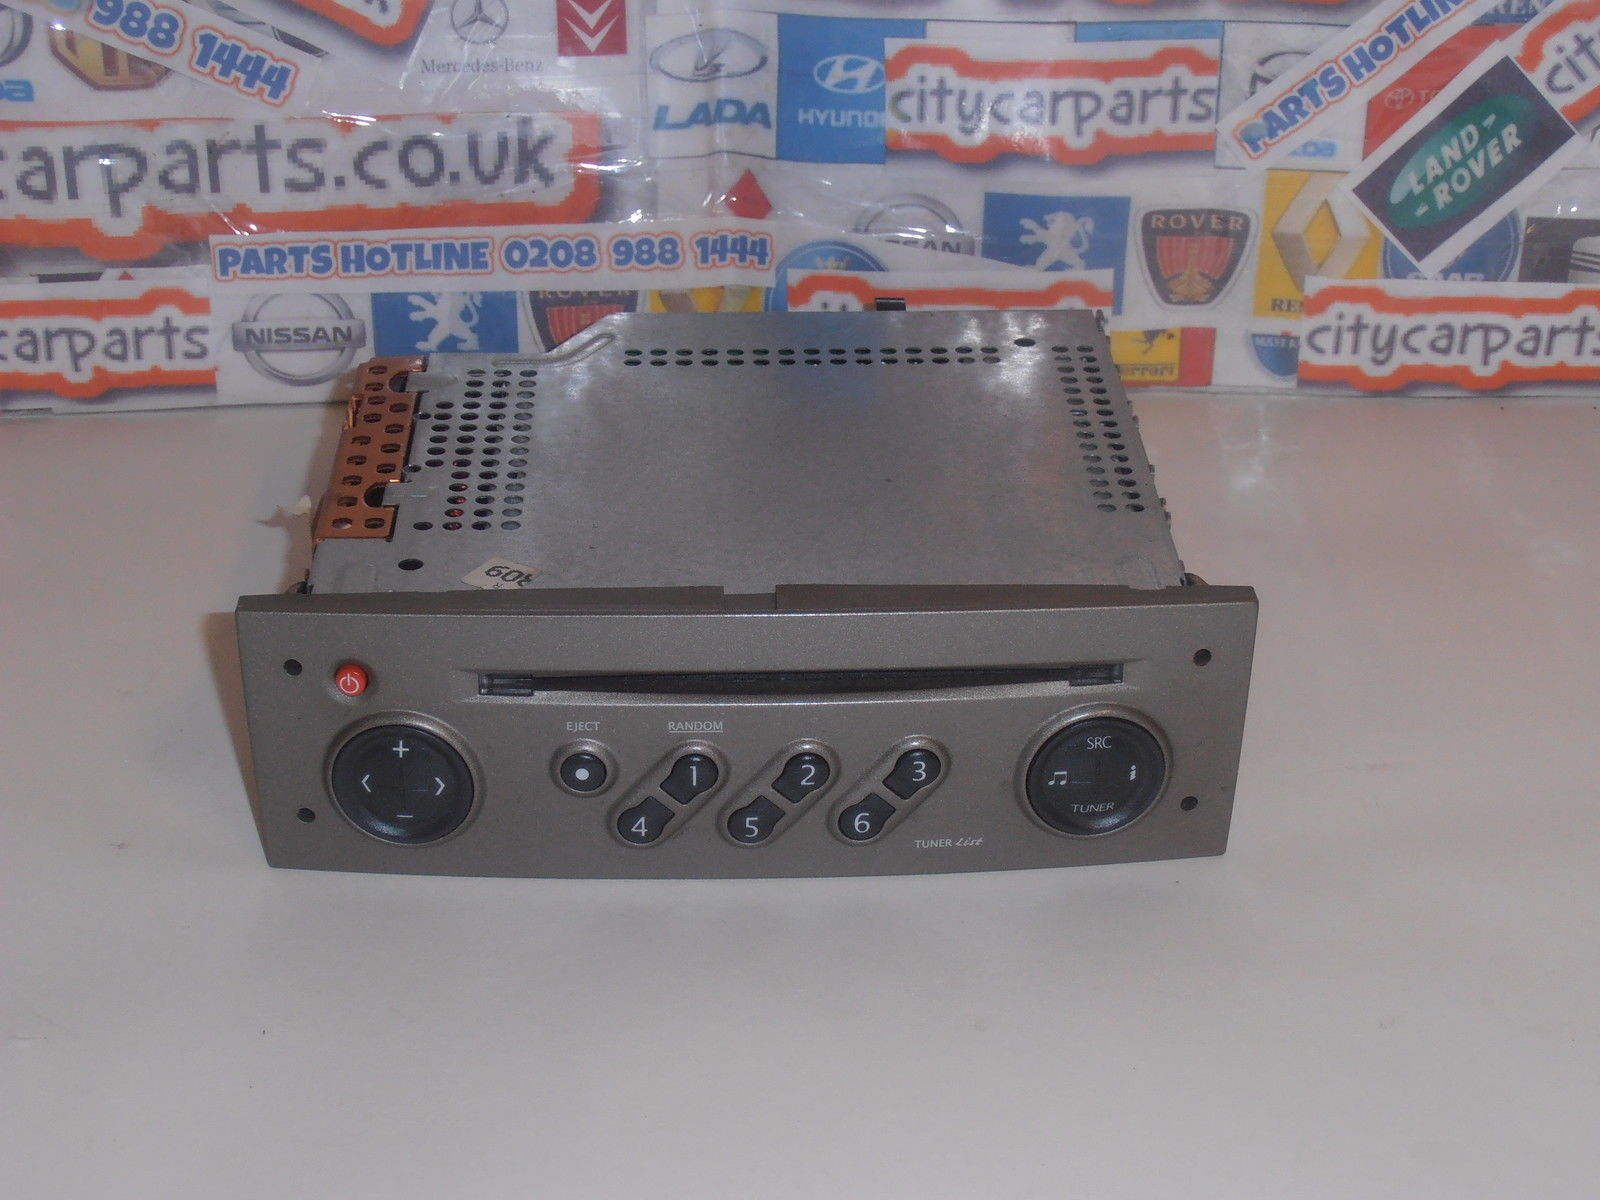 RENAULT MEGANE II & SCENIC II CD PLAYER RADIO STEREO TUNER LIST WITH